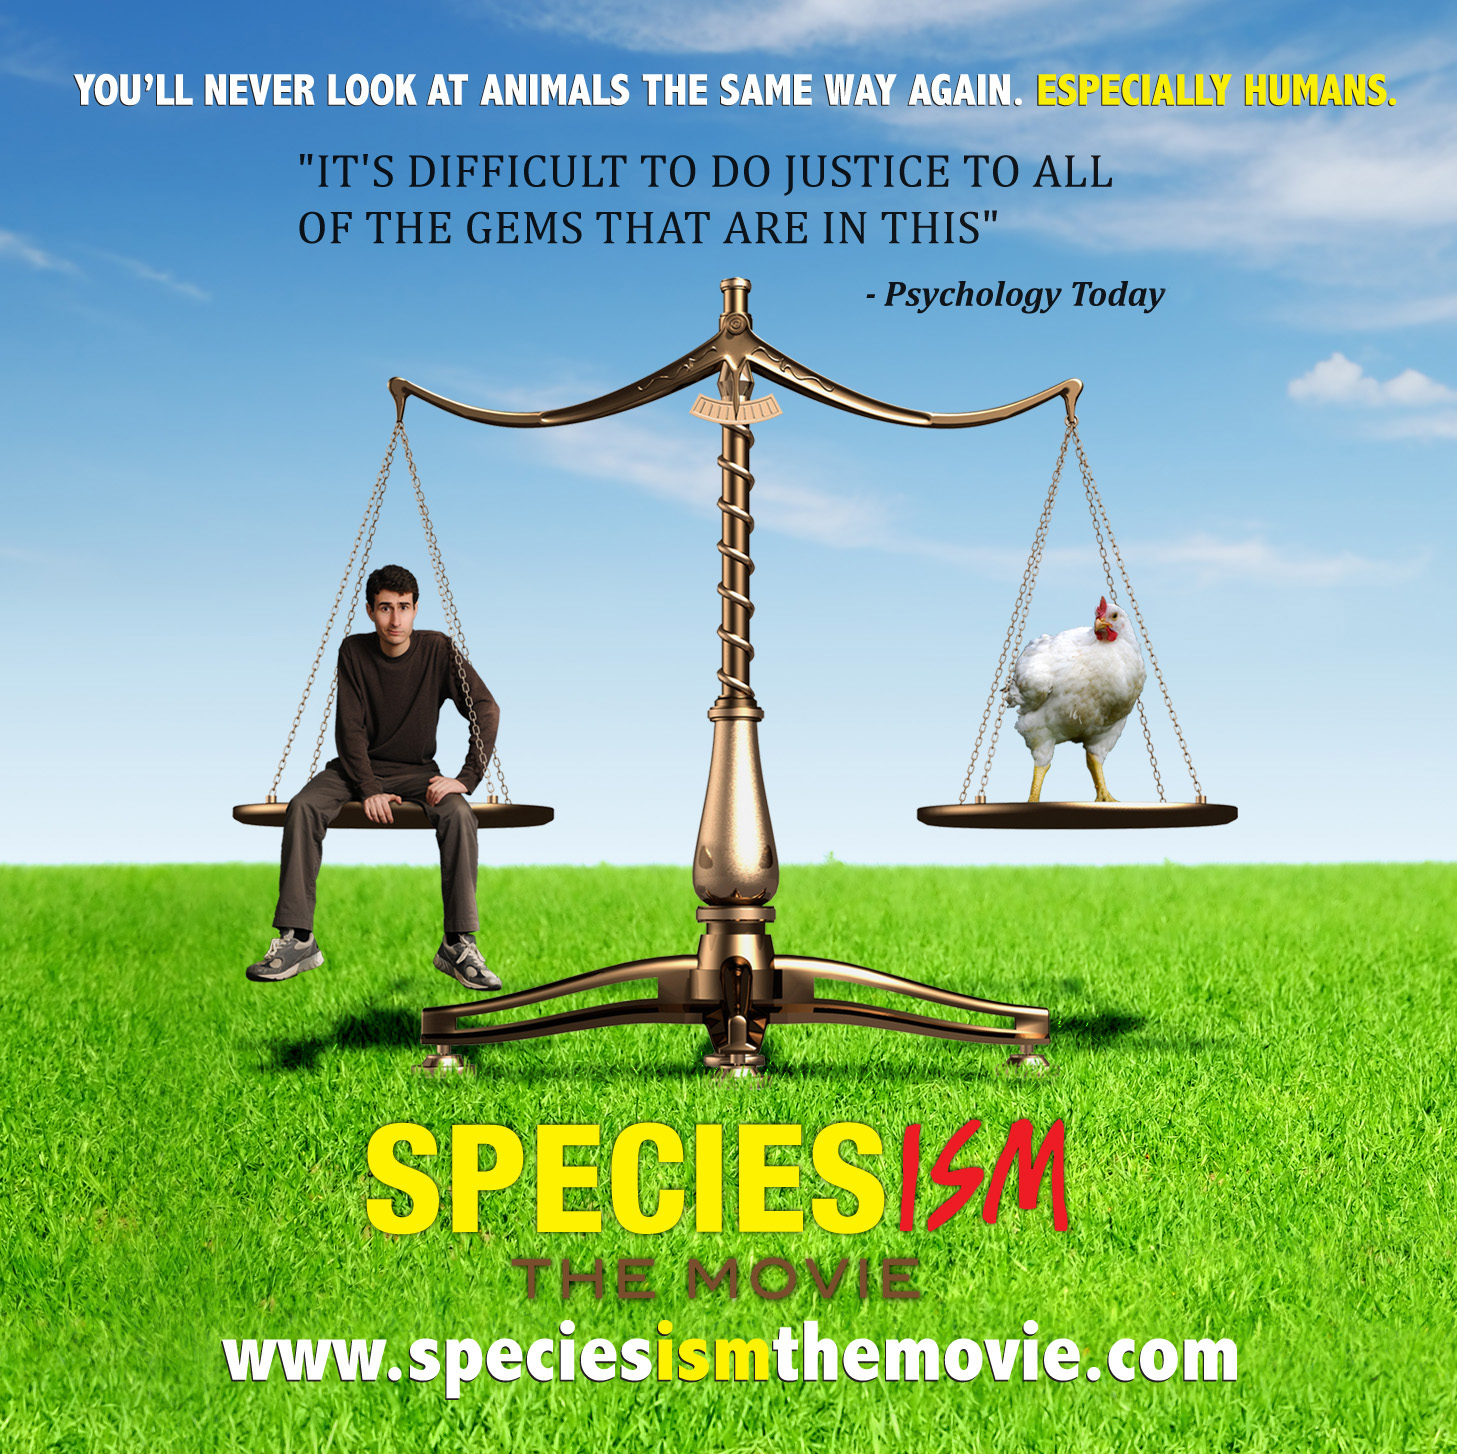 Speciesism the Movie (DVD) – $20